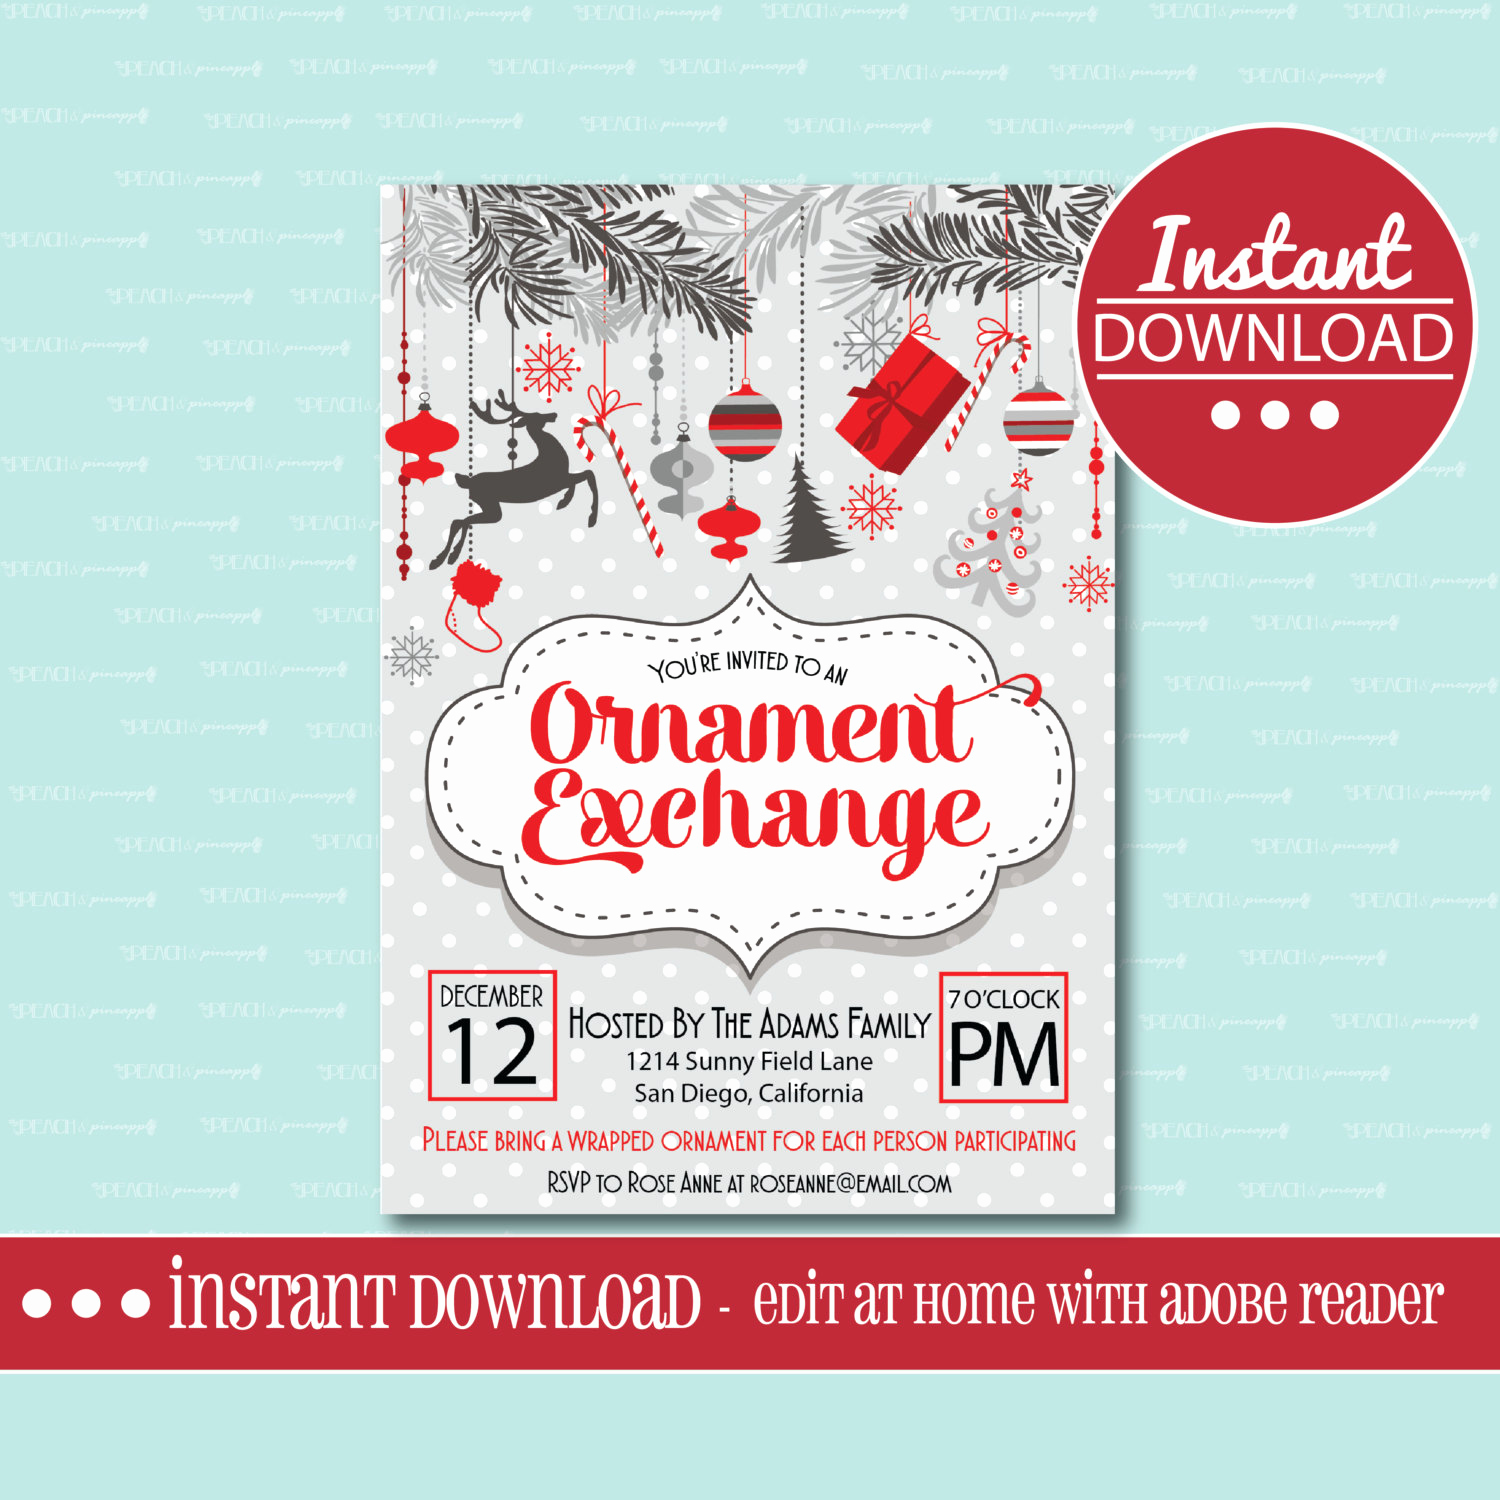 Work Christmas Party Invitation Elegant Christmas Party Invitation Editable Printable ornament